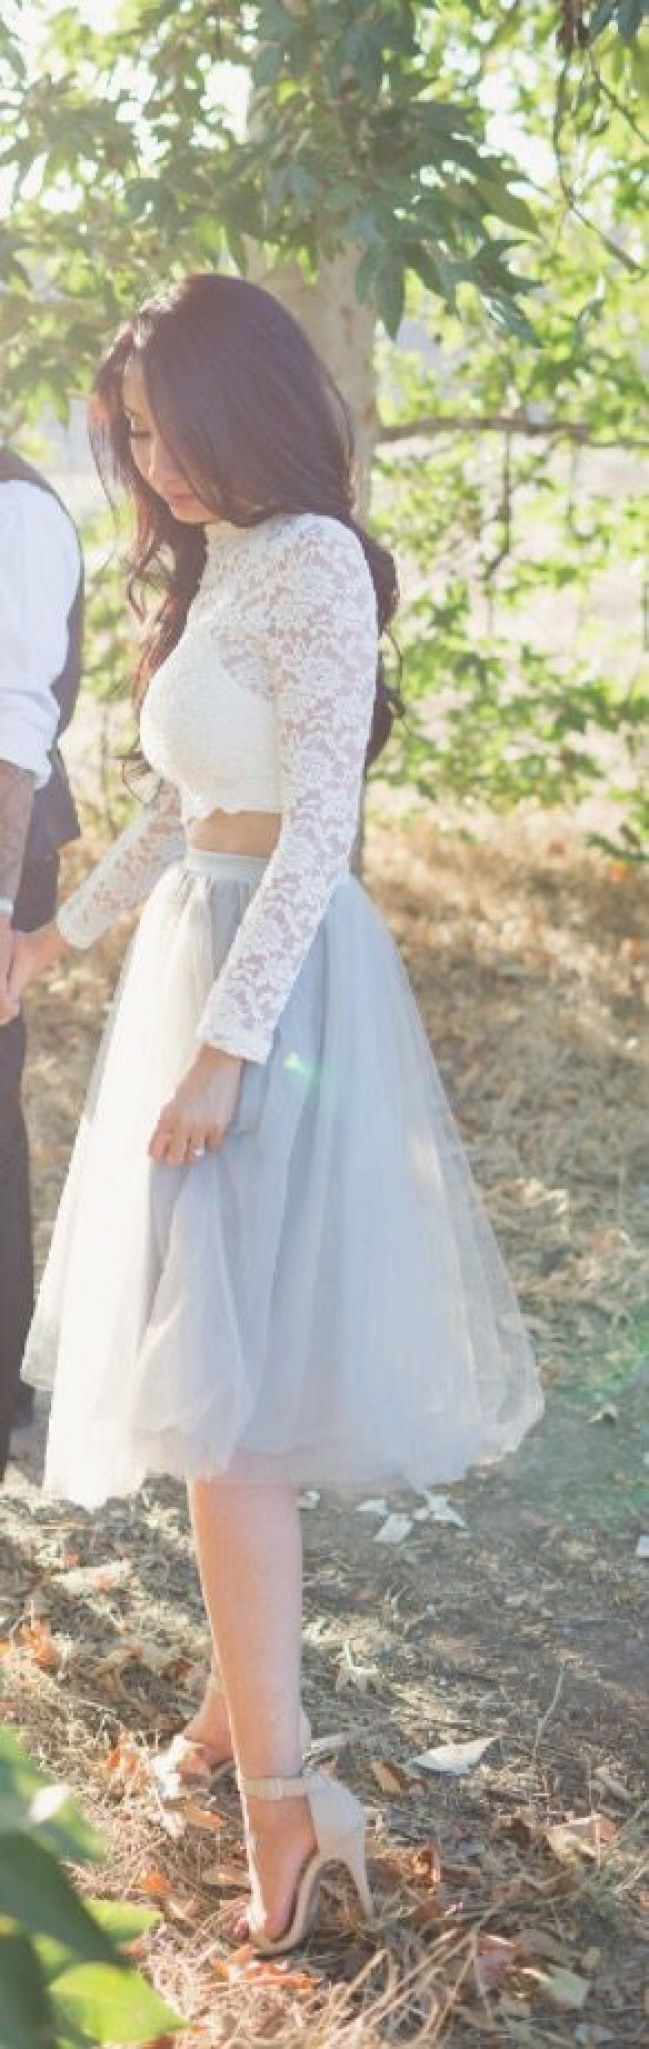 Tulle skirt outfits <3 / Tiulowe spódnice #tulle #skirt #outfit #romantic #cute